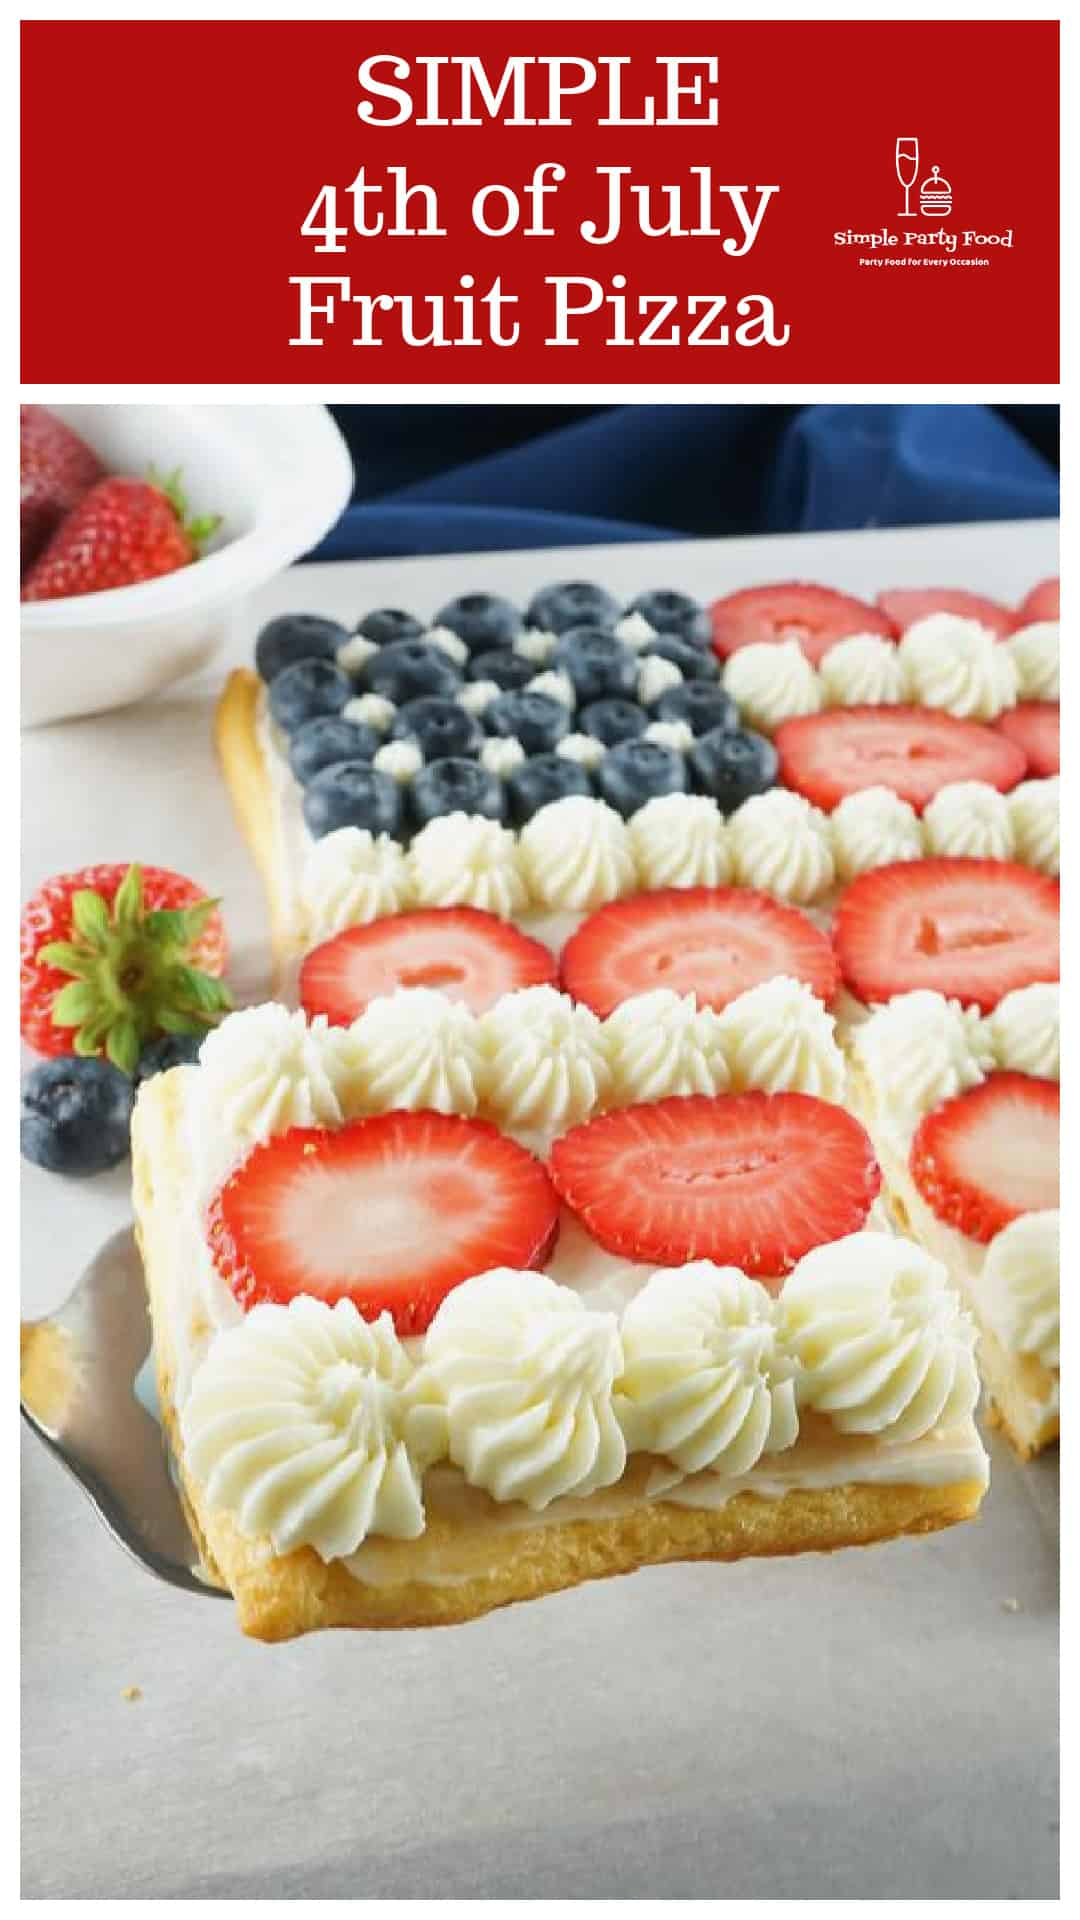 SIMPLE-4th-of-July-Fruit-Pizza-cream-cheese-frosting-fresh-strawberries-and-blueberries